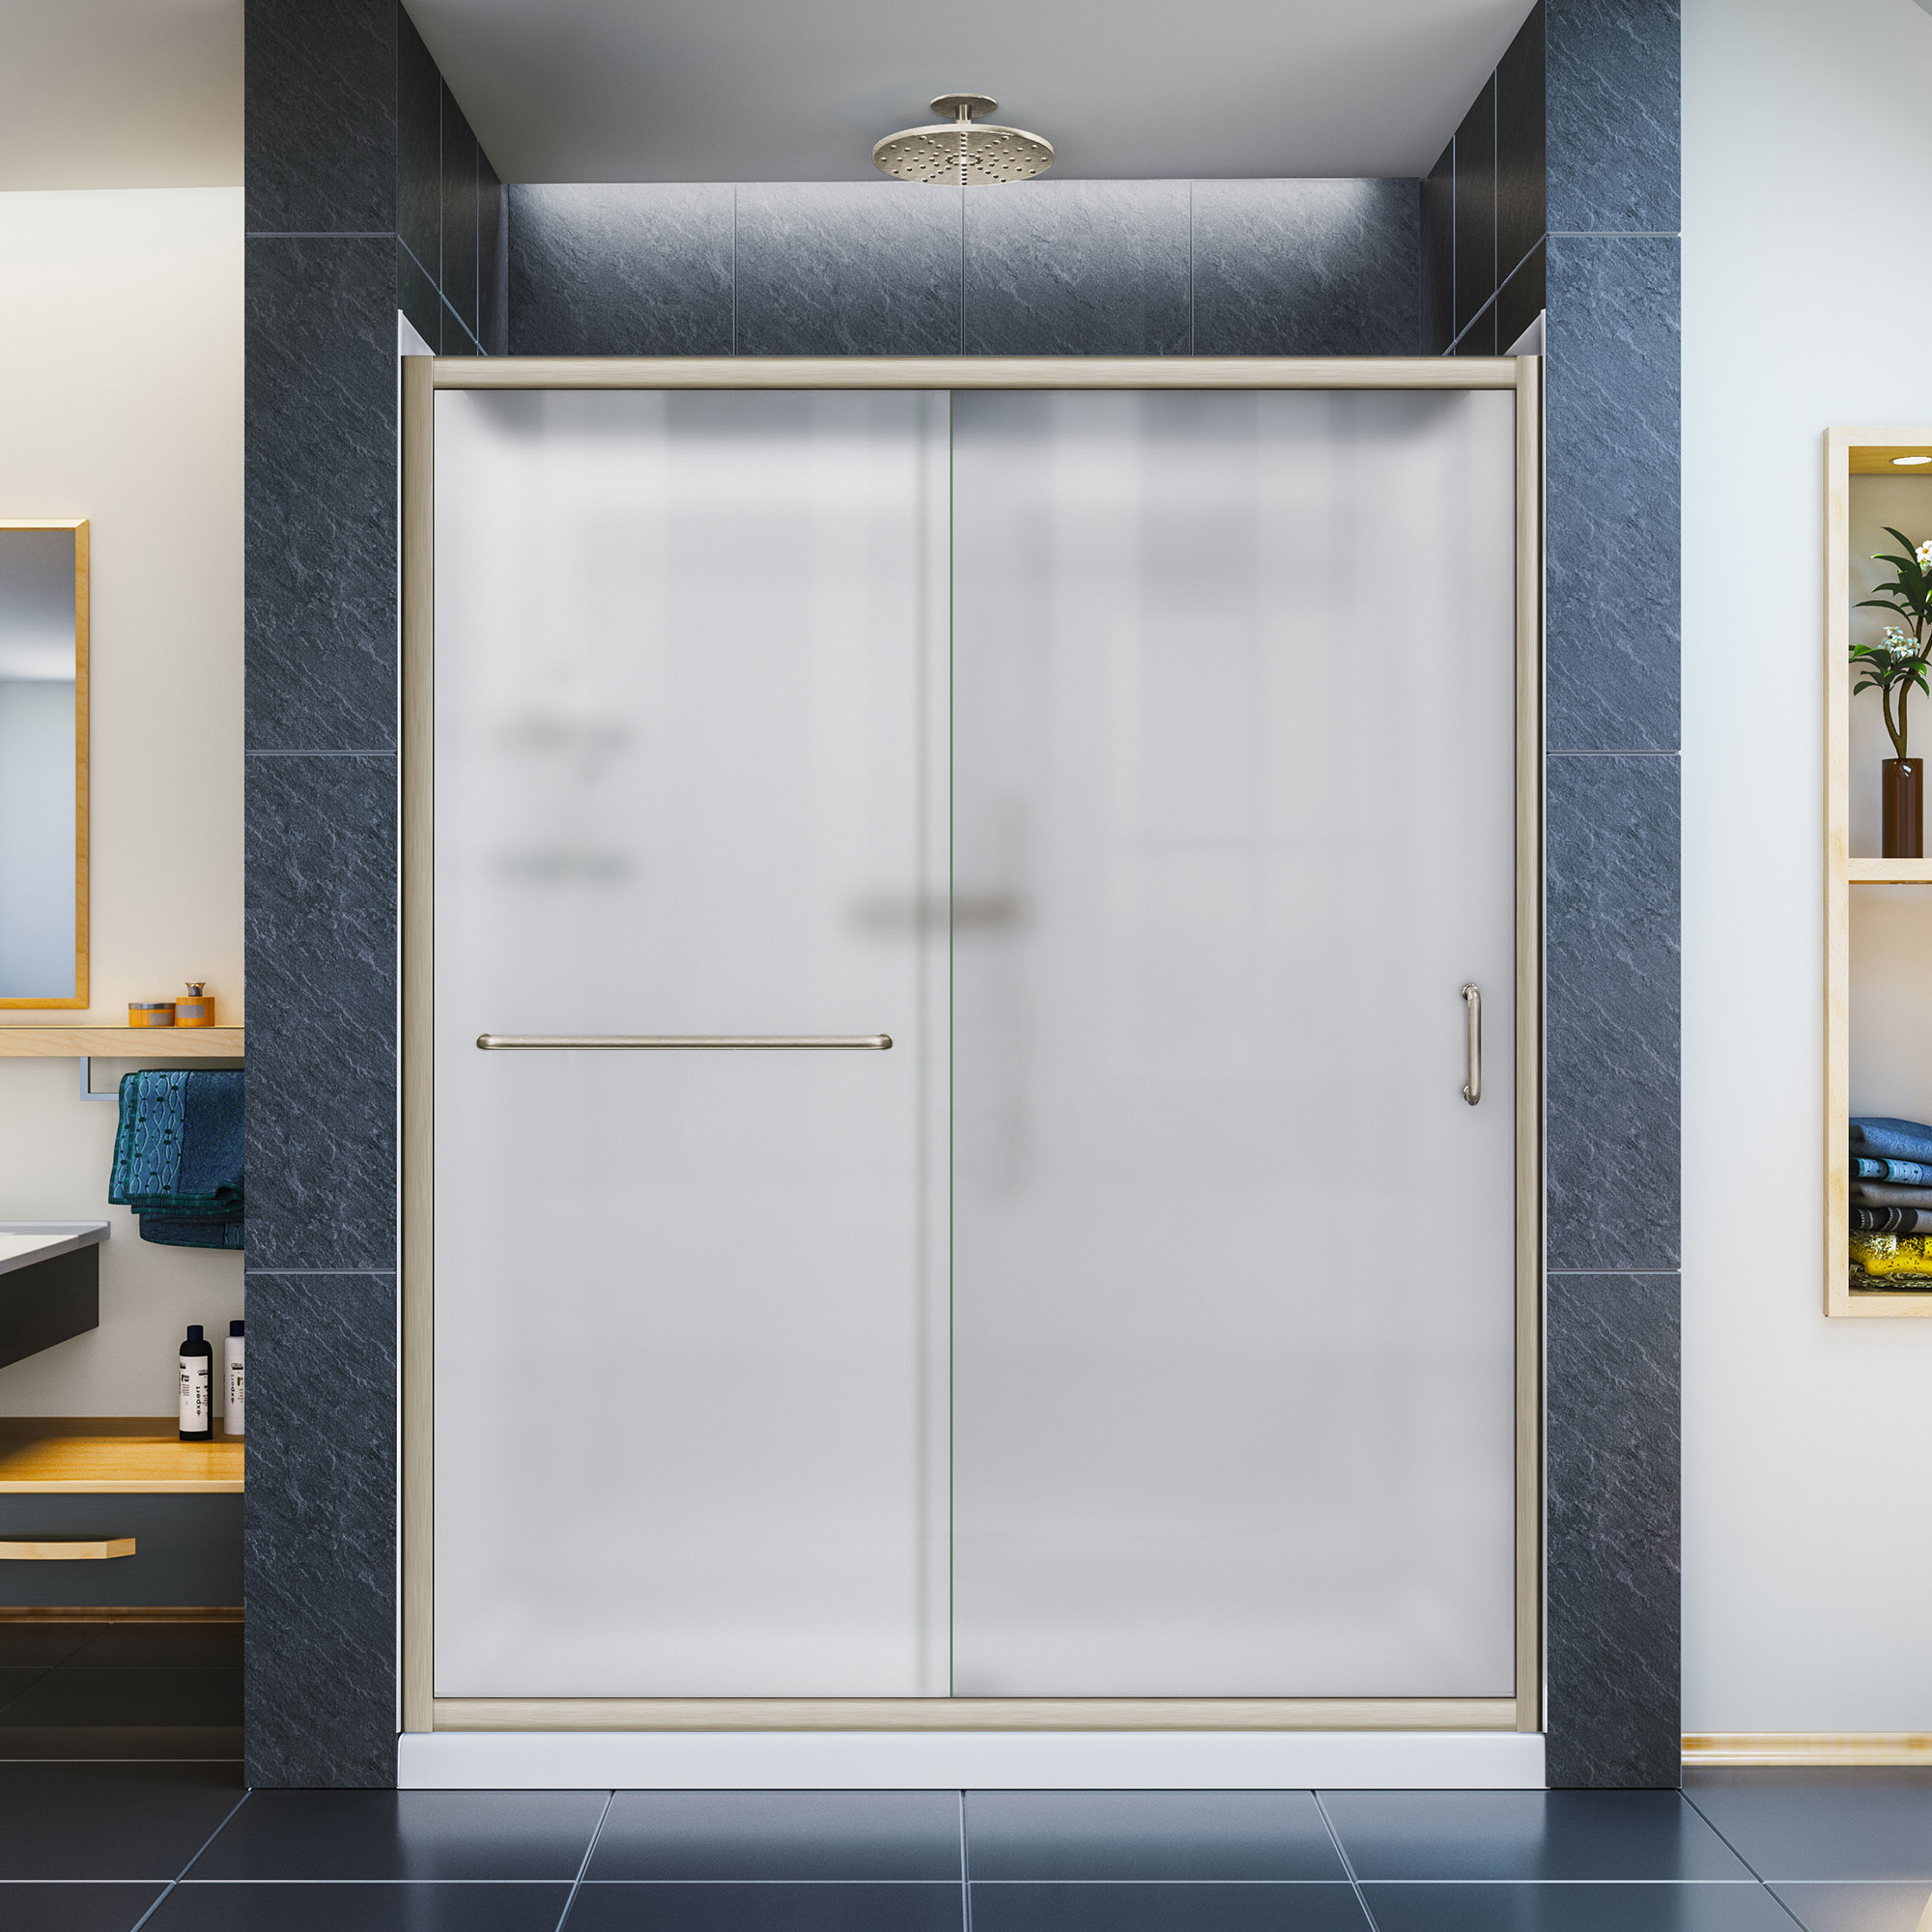 DreamLine Infinity-Z 34 in. D x 60 in. W x 76 3/4 in. H Frosted Sliding Shower Door in Brushed Nickel, Left Drain Base, Backwalls